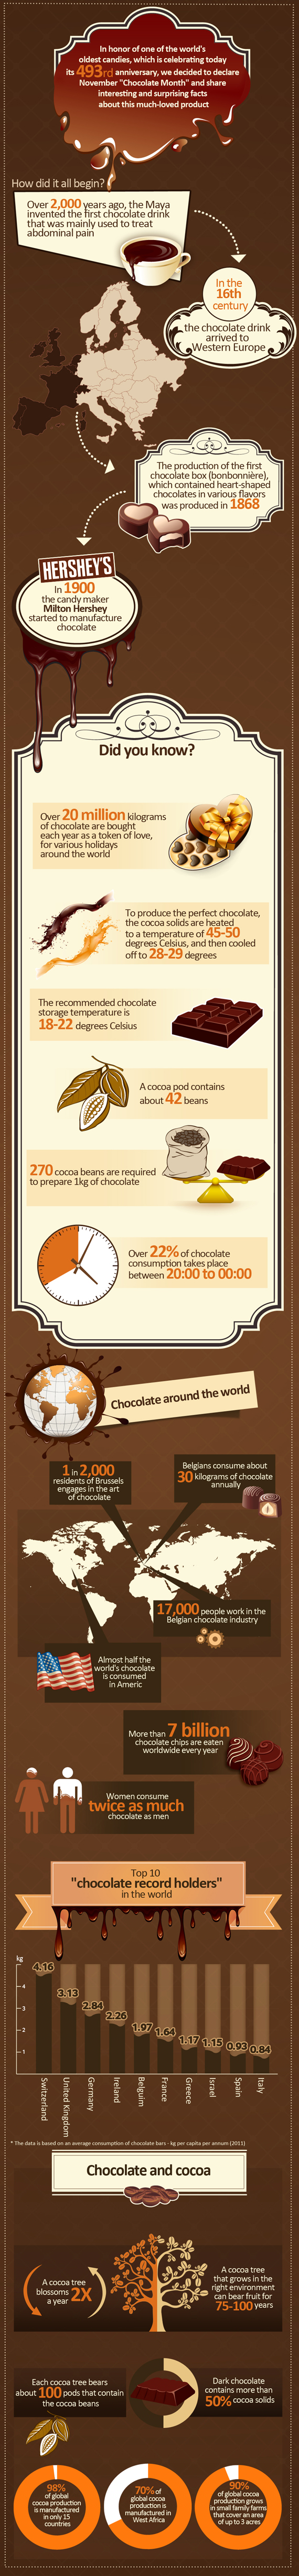 History and Timeline of Chocolate